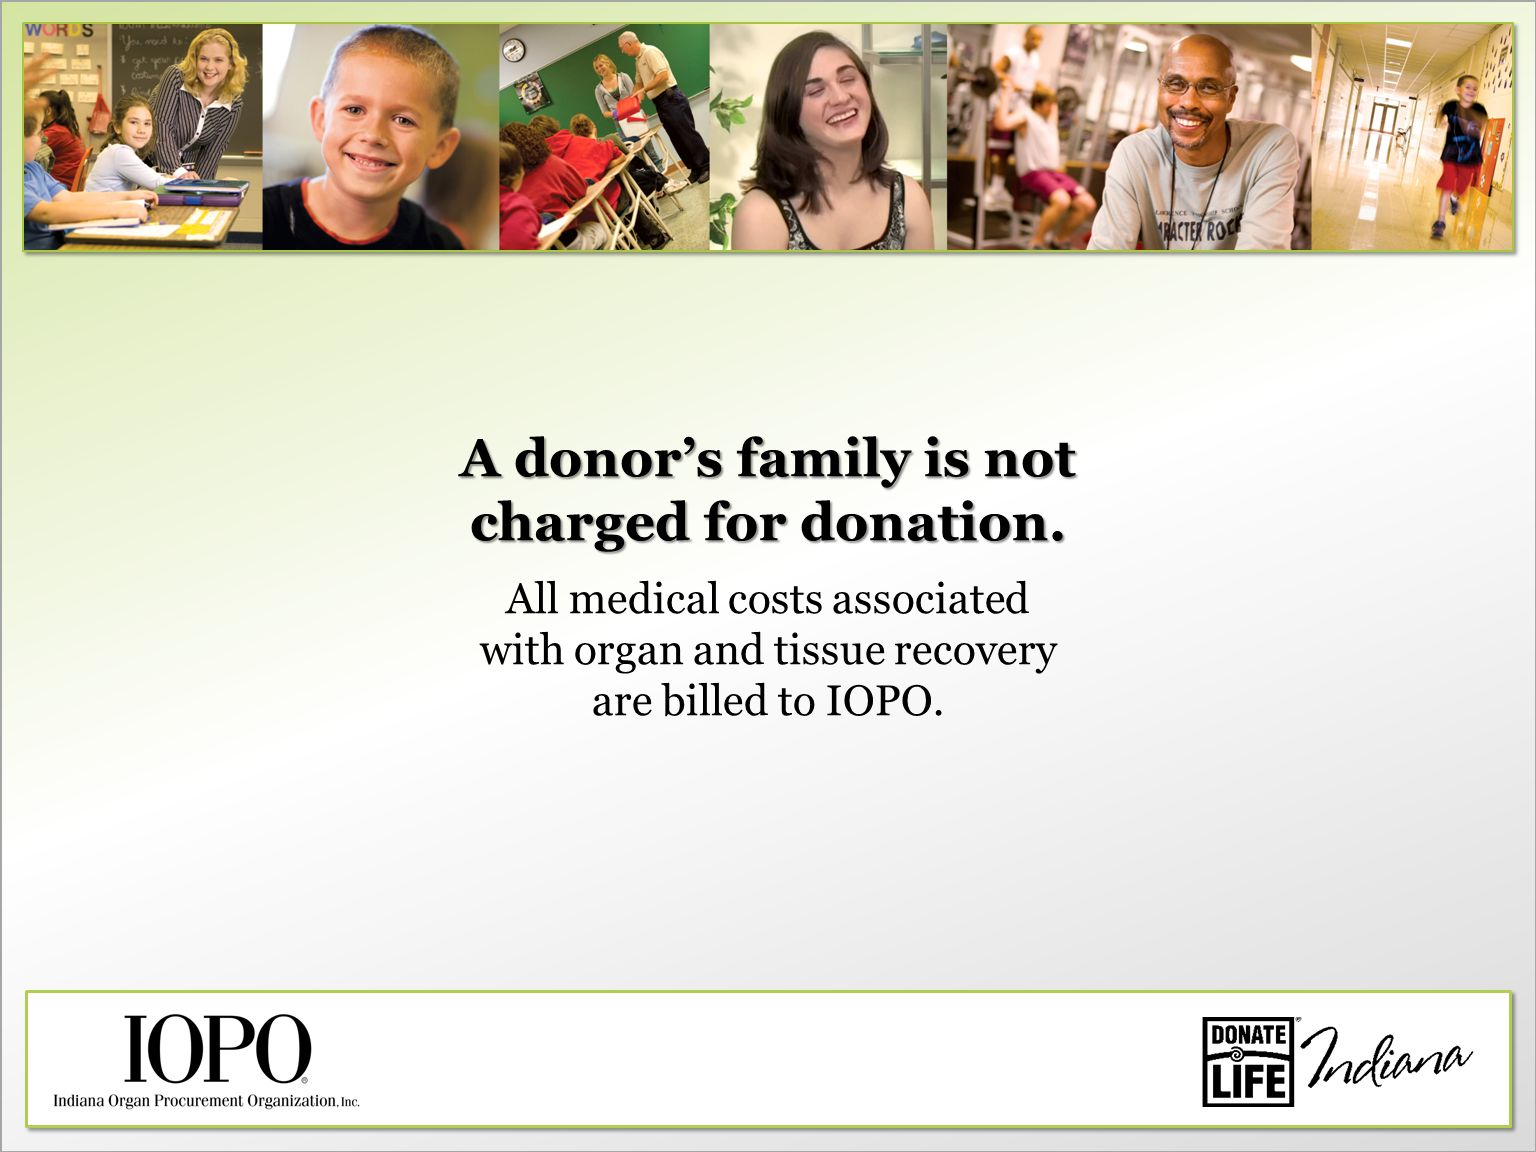 A donor's family is not charged for donation.